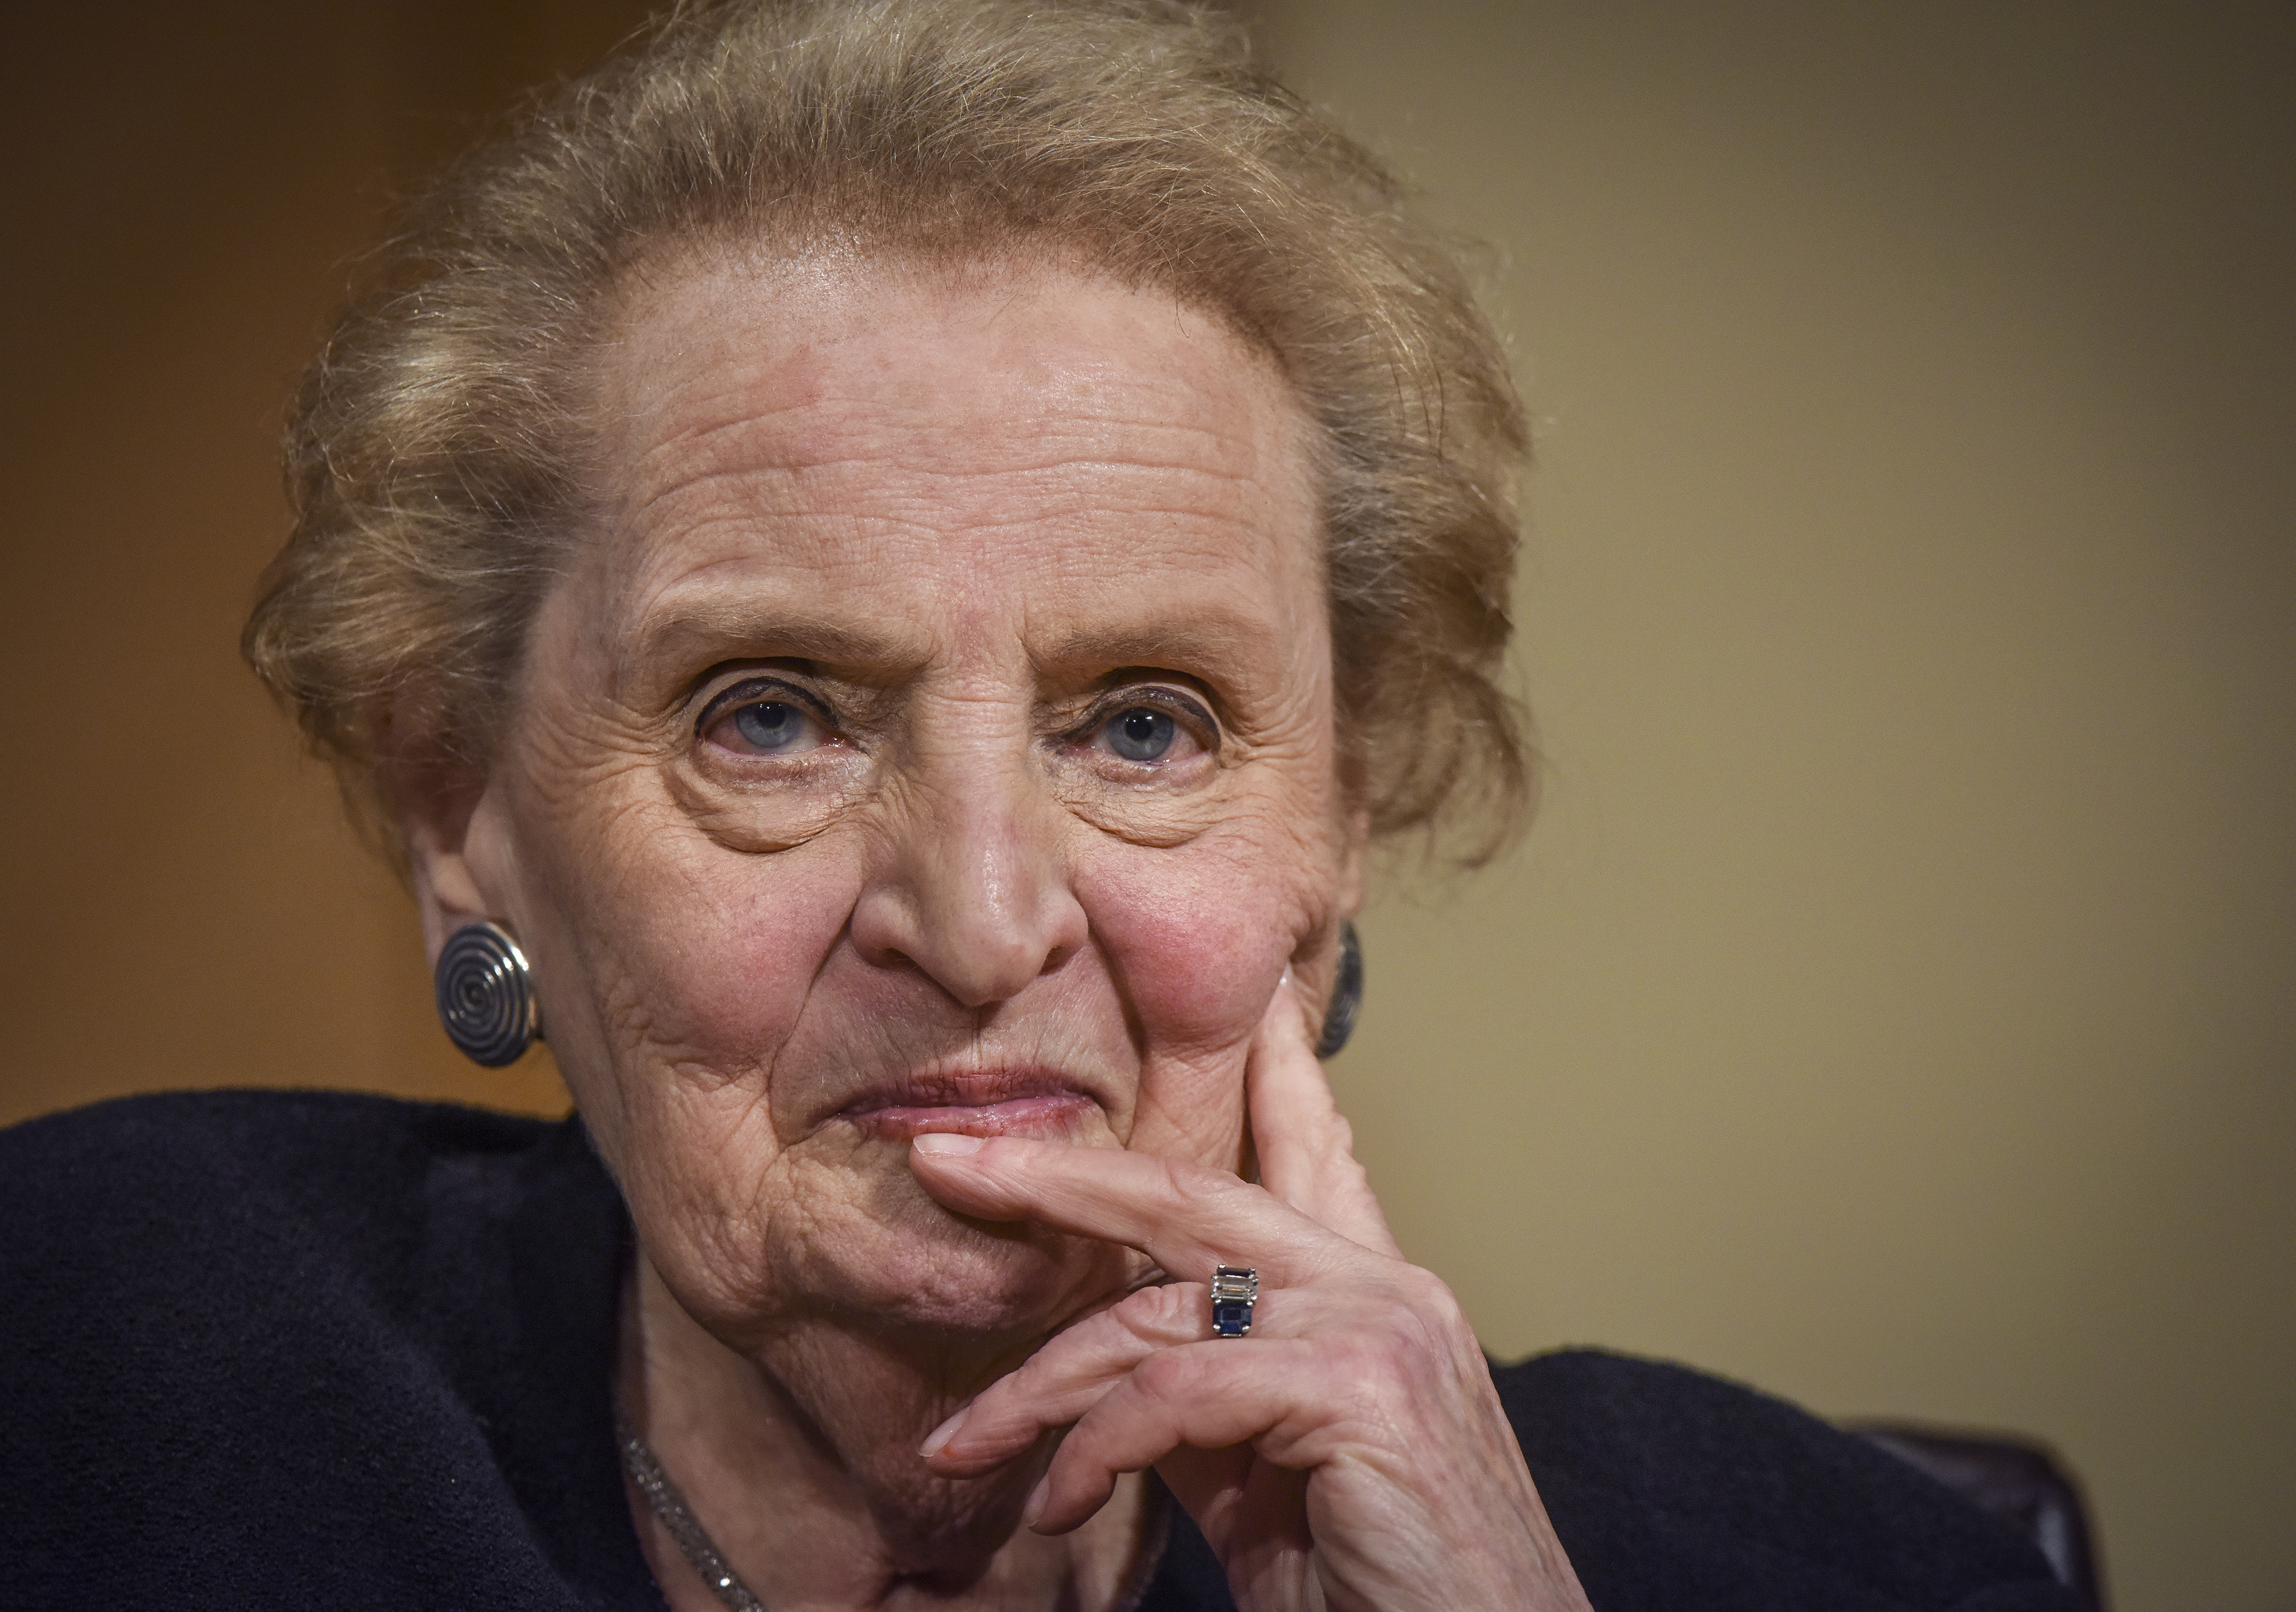 Former U.S. Secretary of State Madeleine Albright participates in a moderated conversation about her new book.